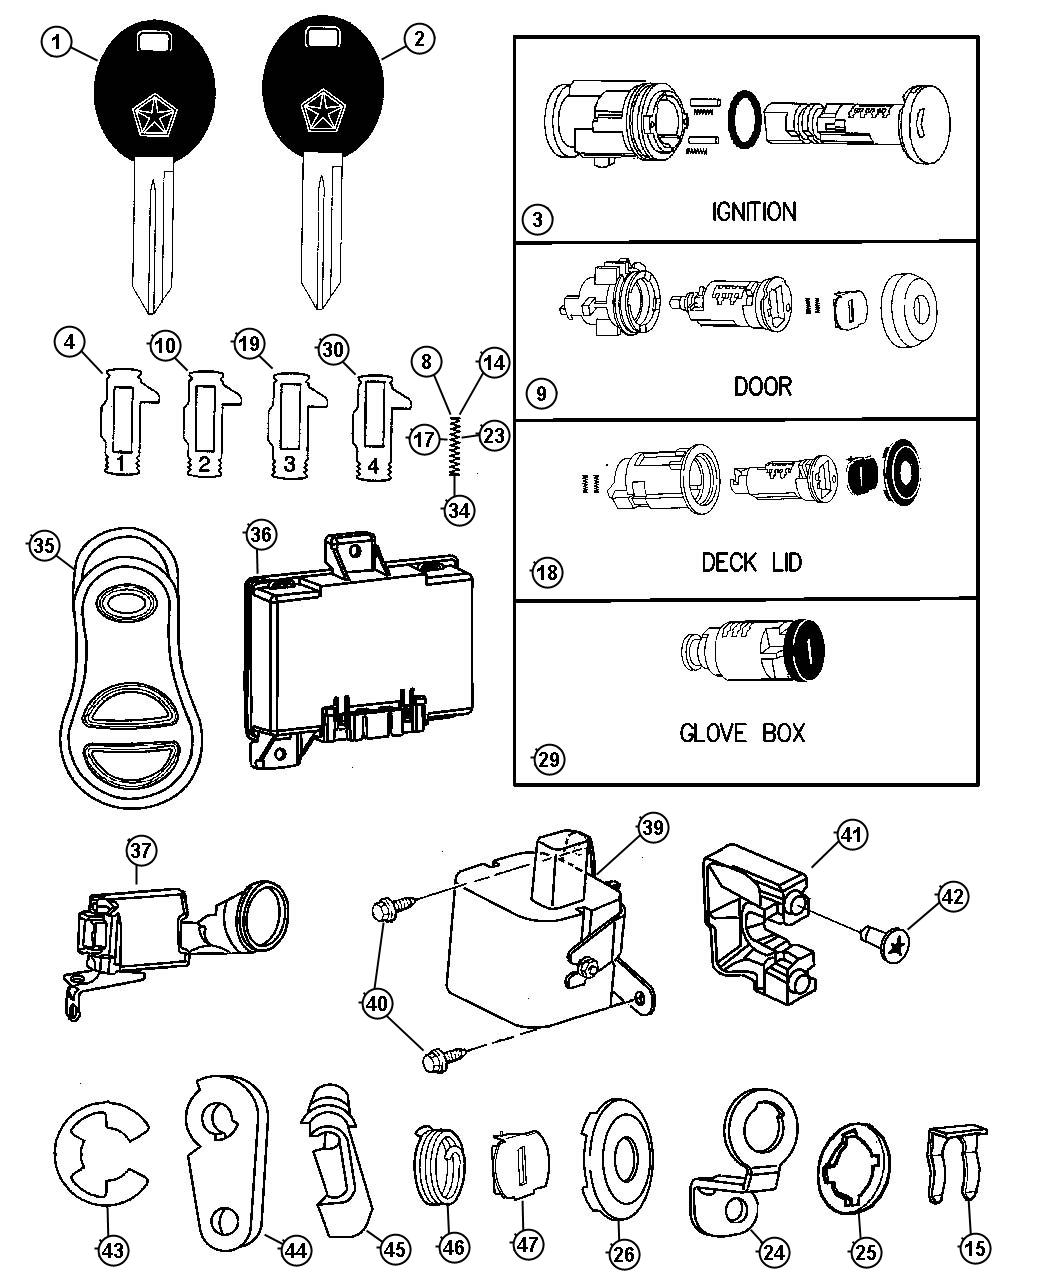 Jeep Grand Cherokee Cylinder Ignition Lock Systemlocks